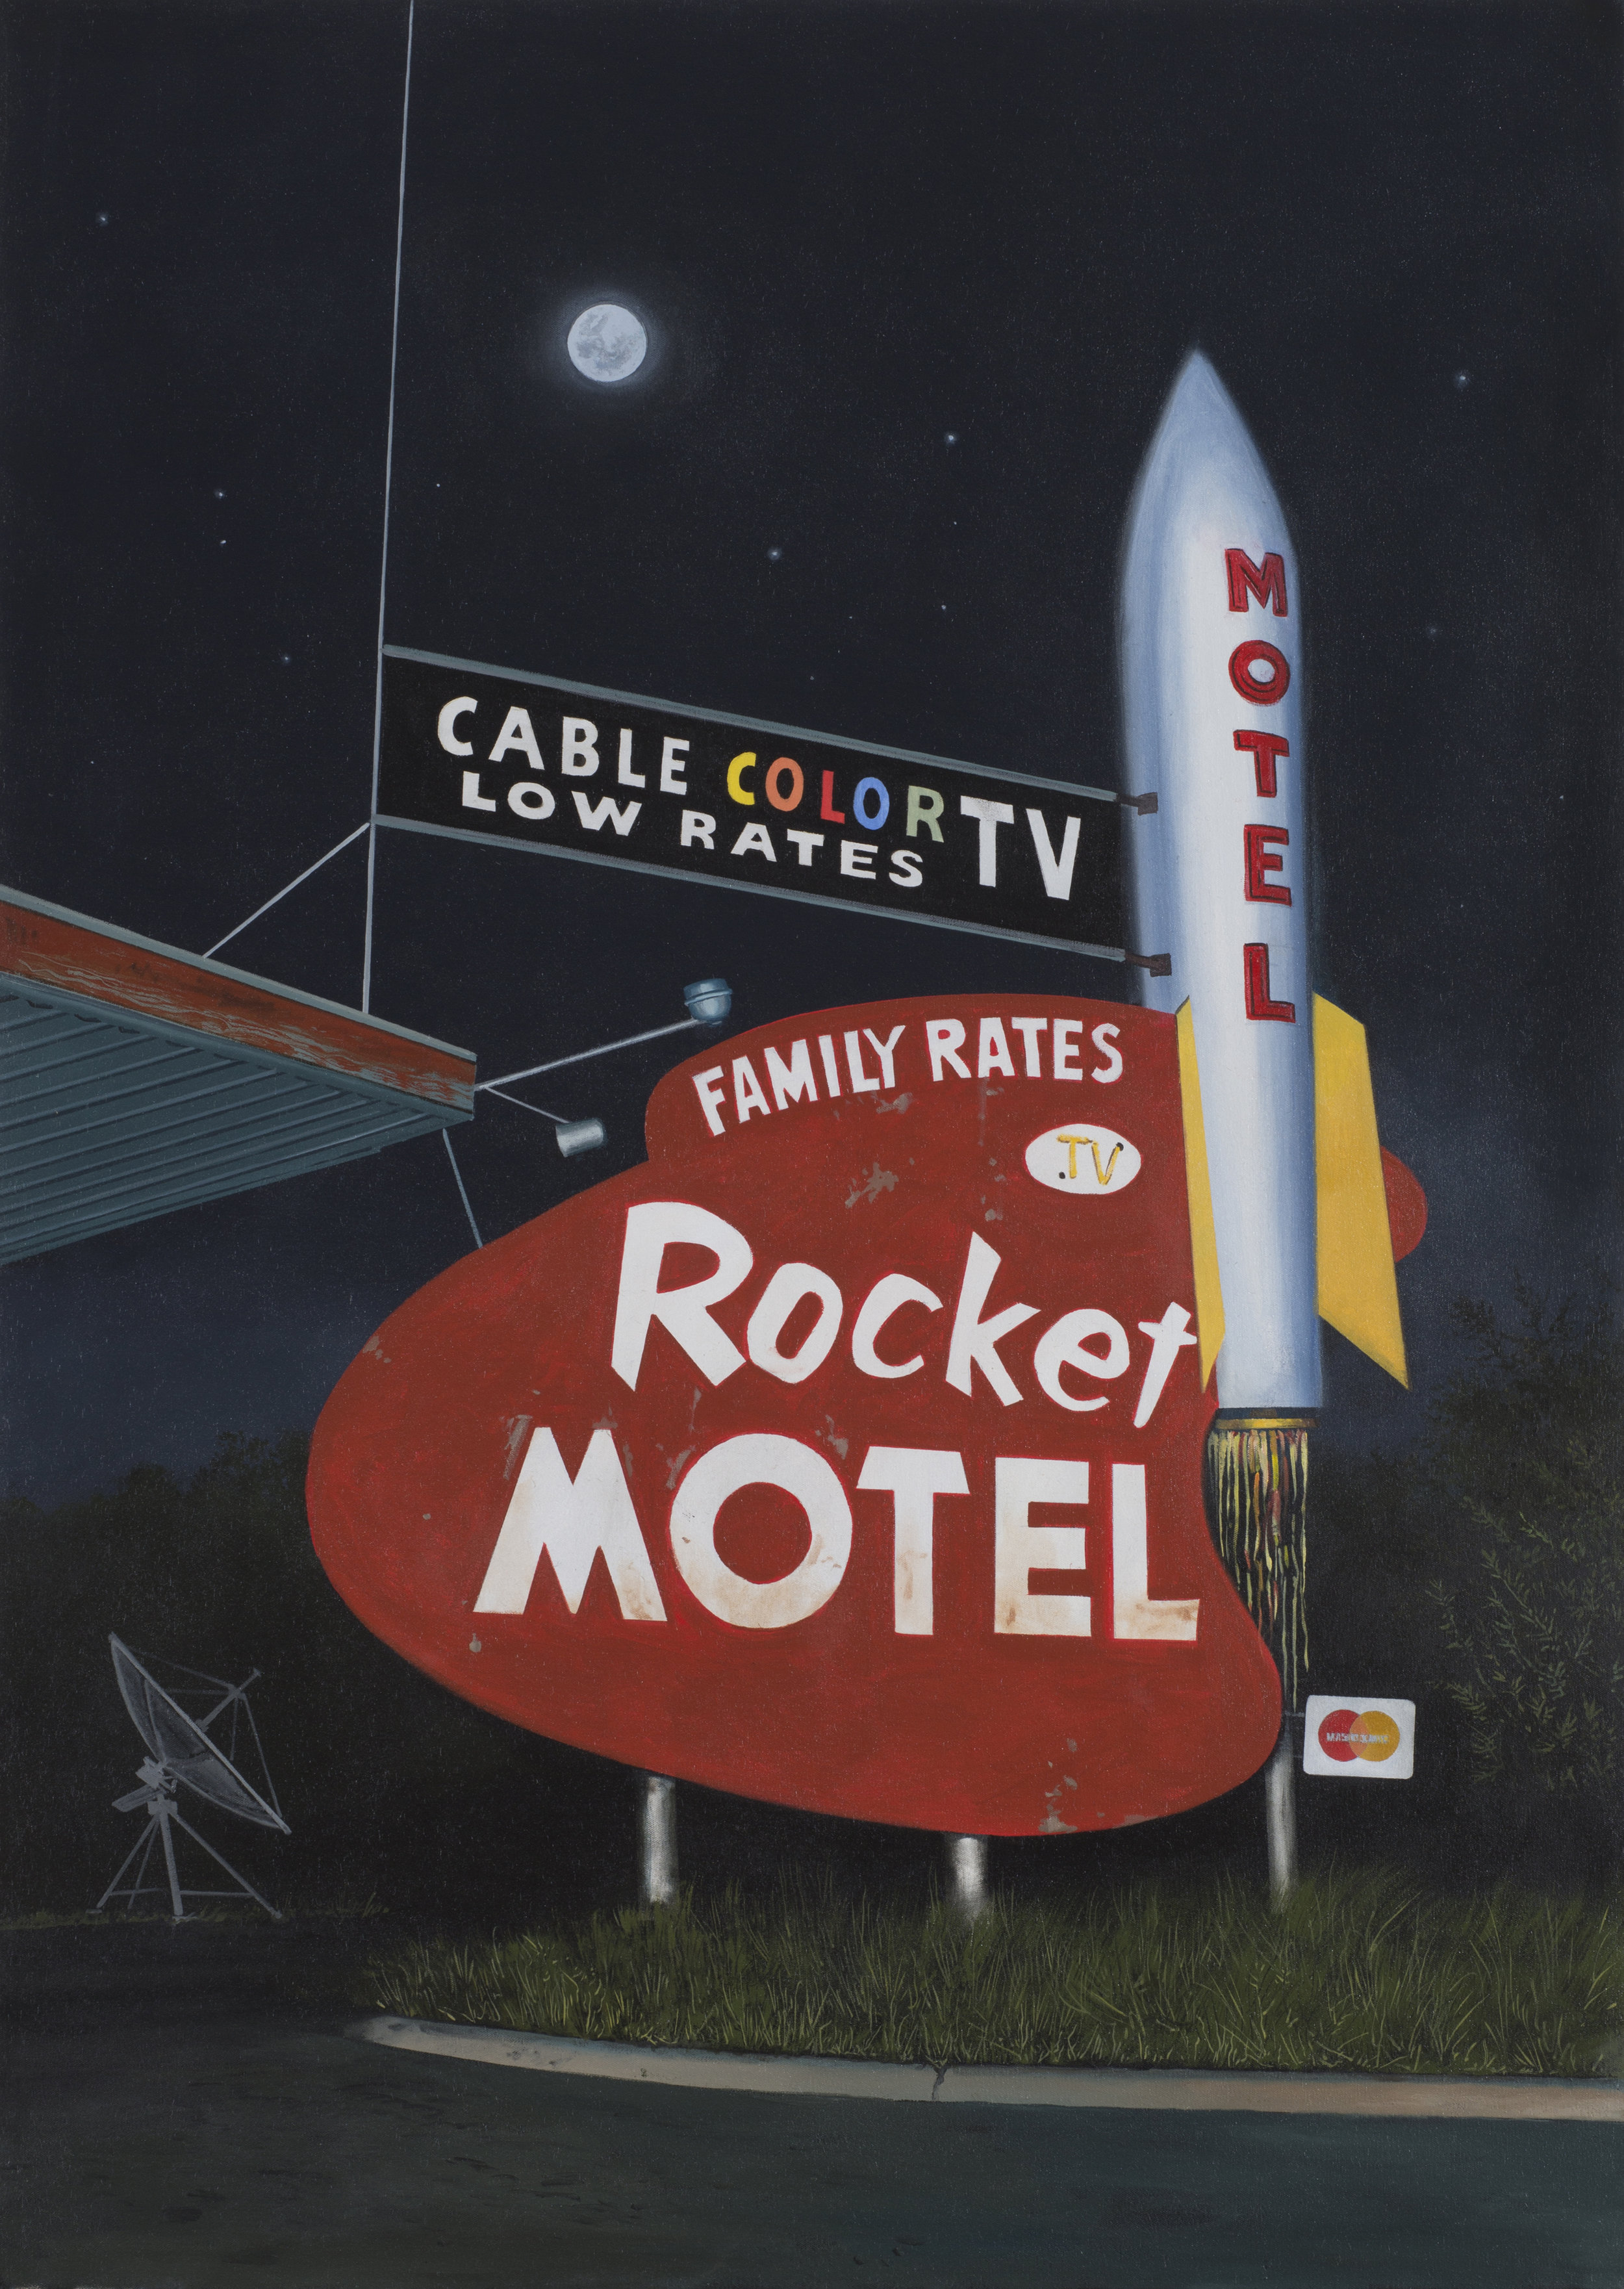 """Daniel Blagg, Rocket Motel,  2017, oil on canvas, 55 x 38"""". Contact Artspace111 to purchase."""